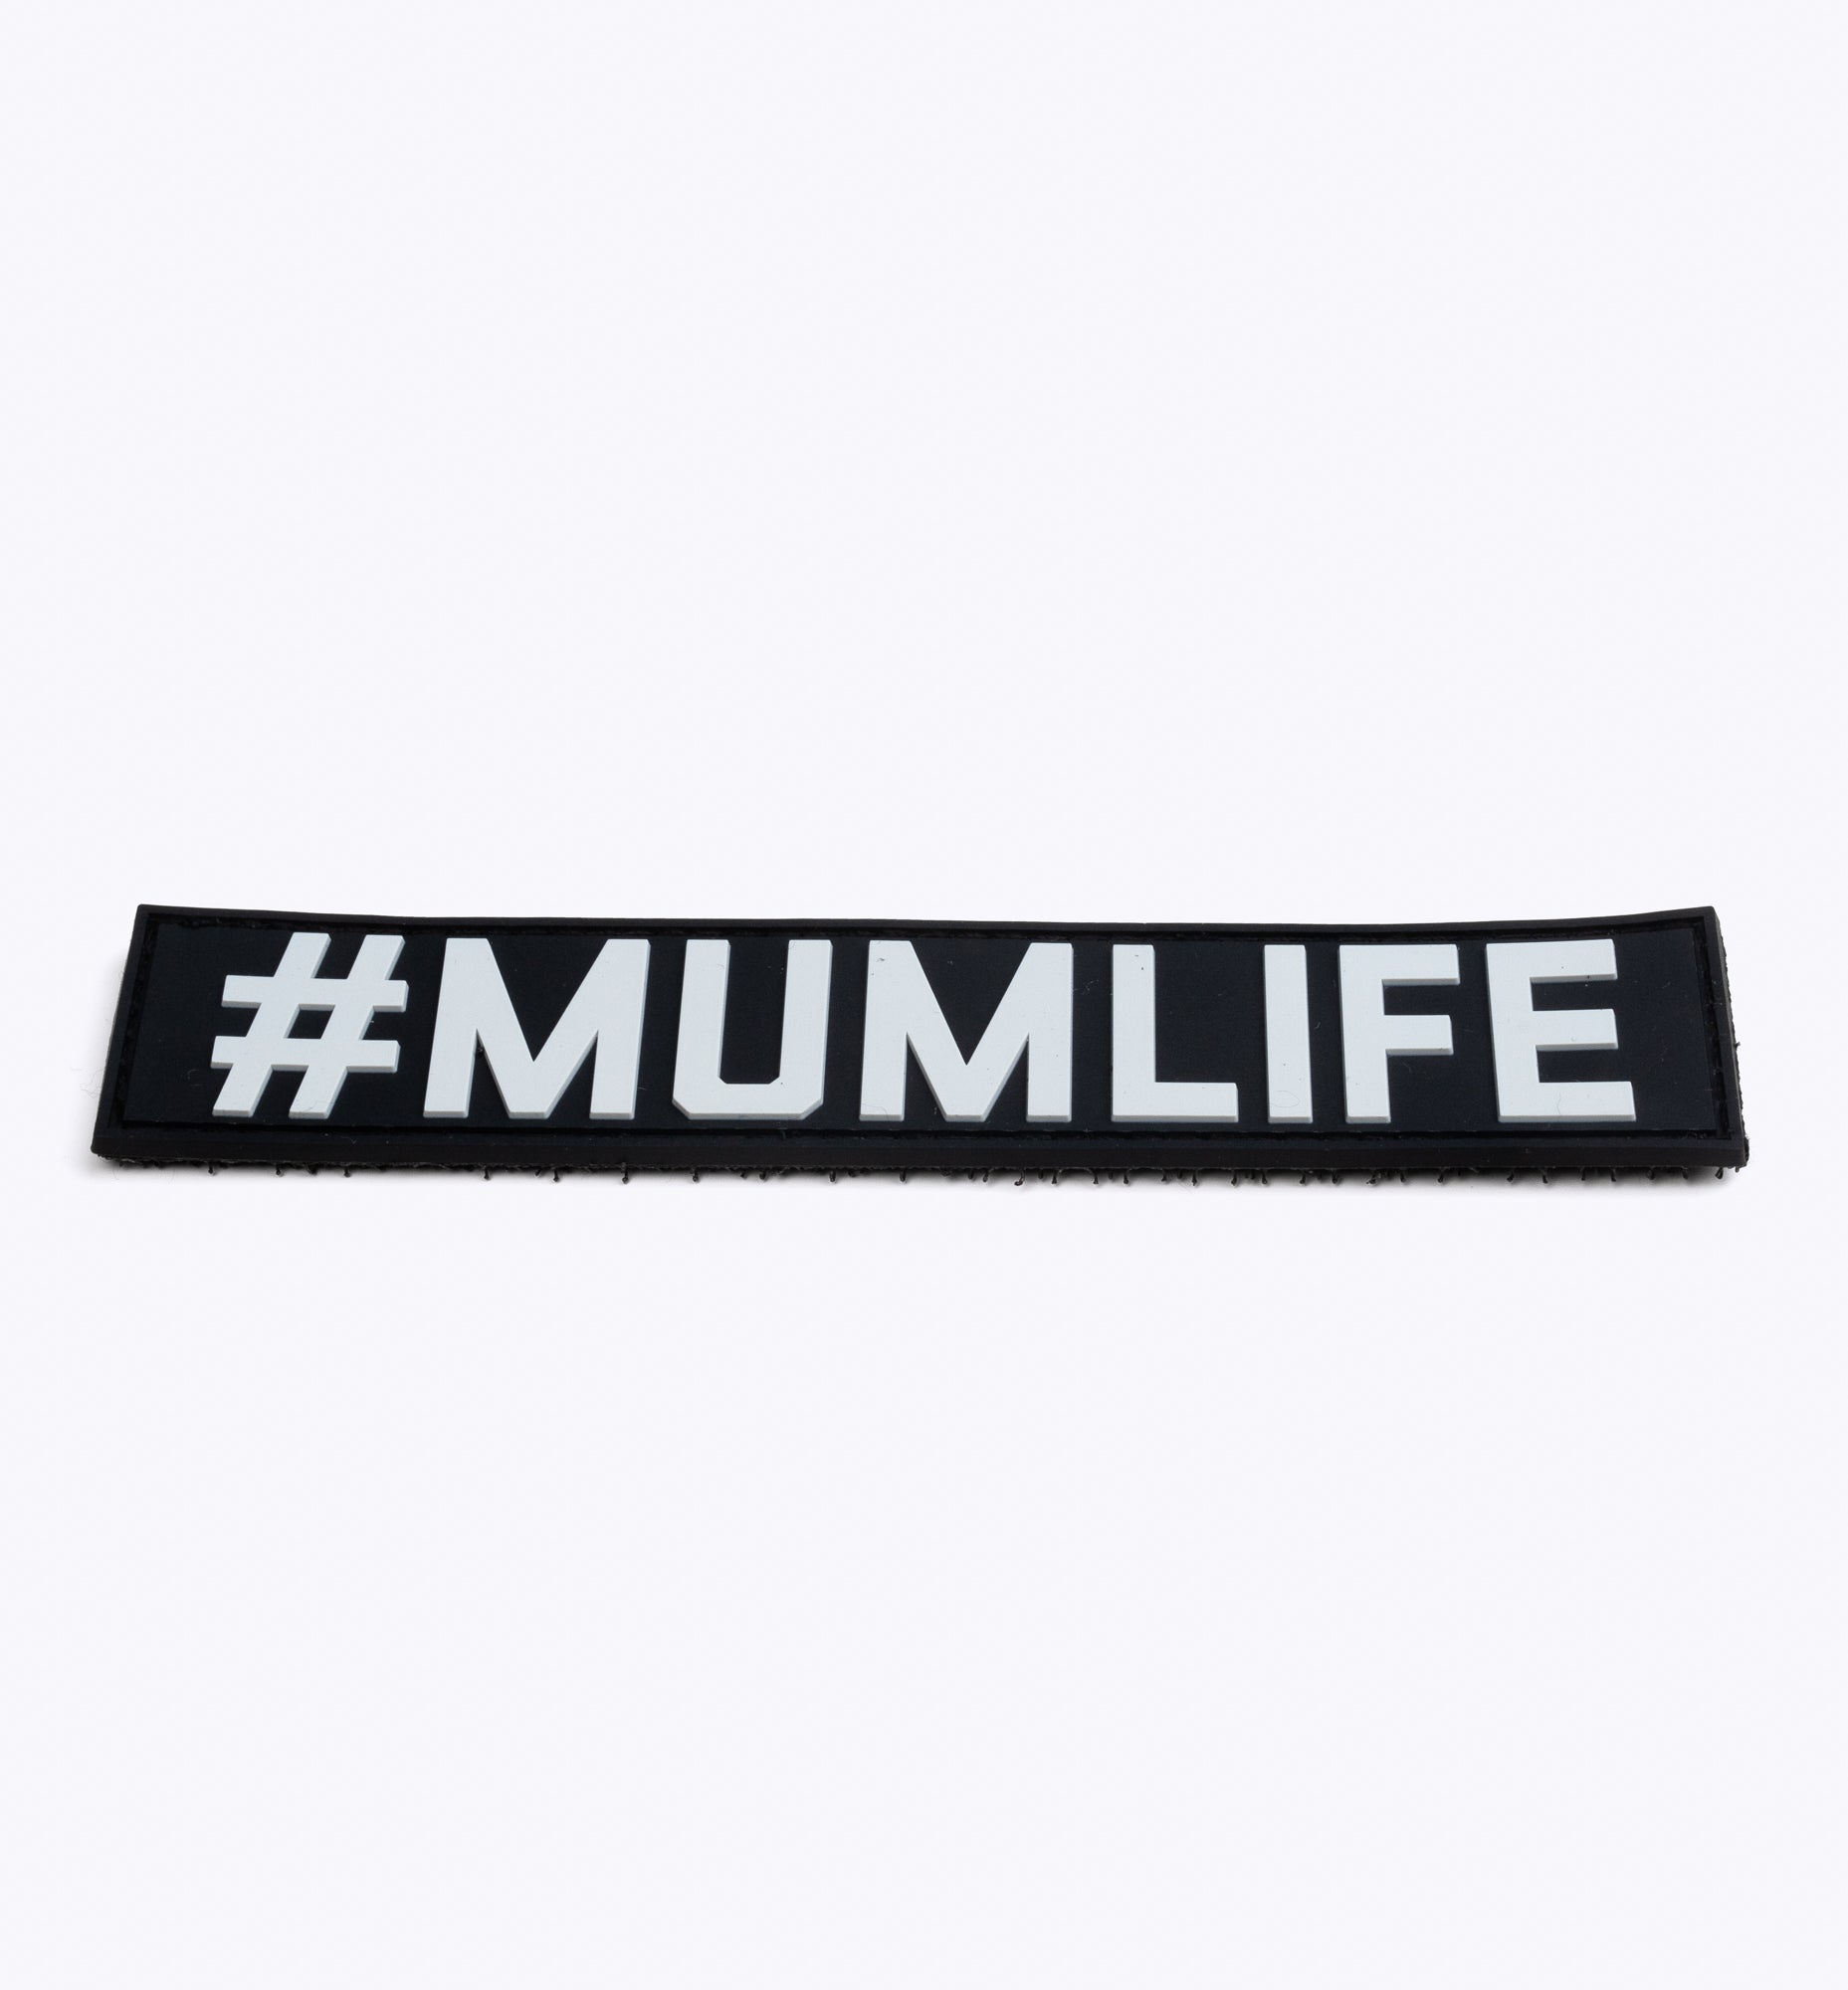 '#MUMLIFE' PVC Patch